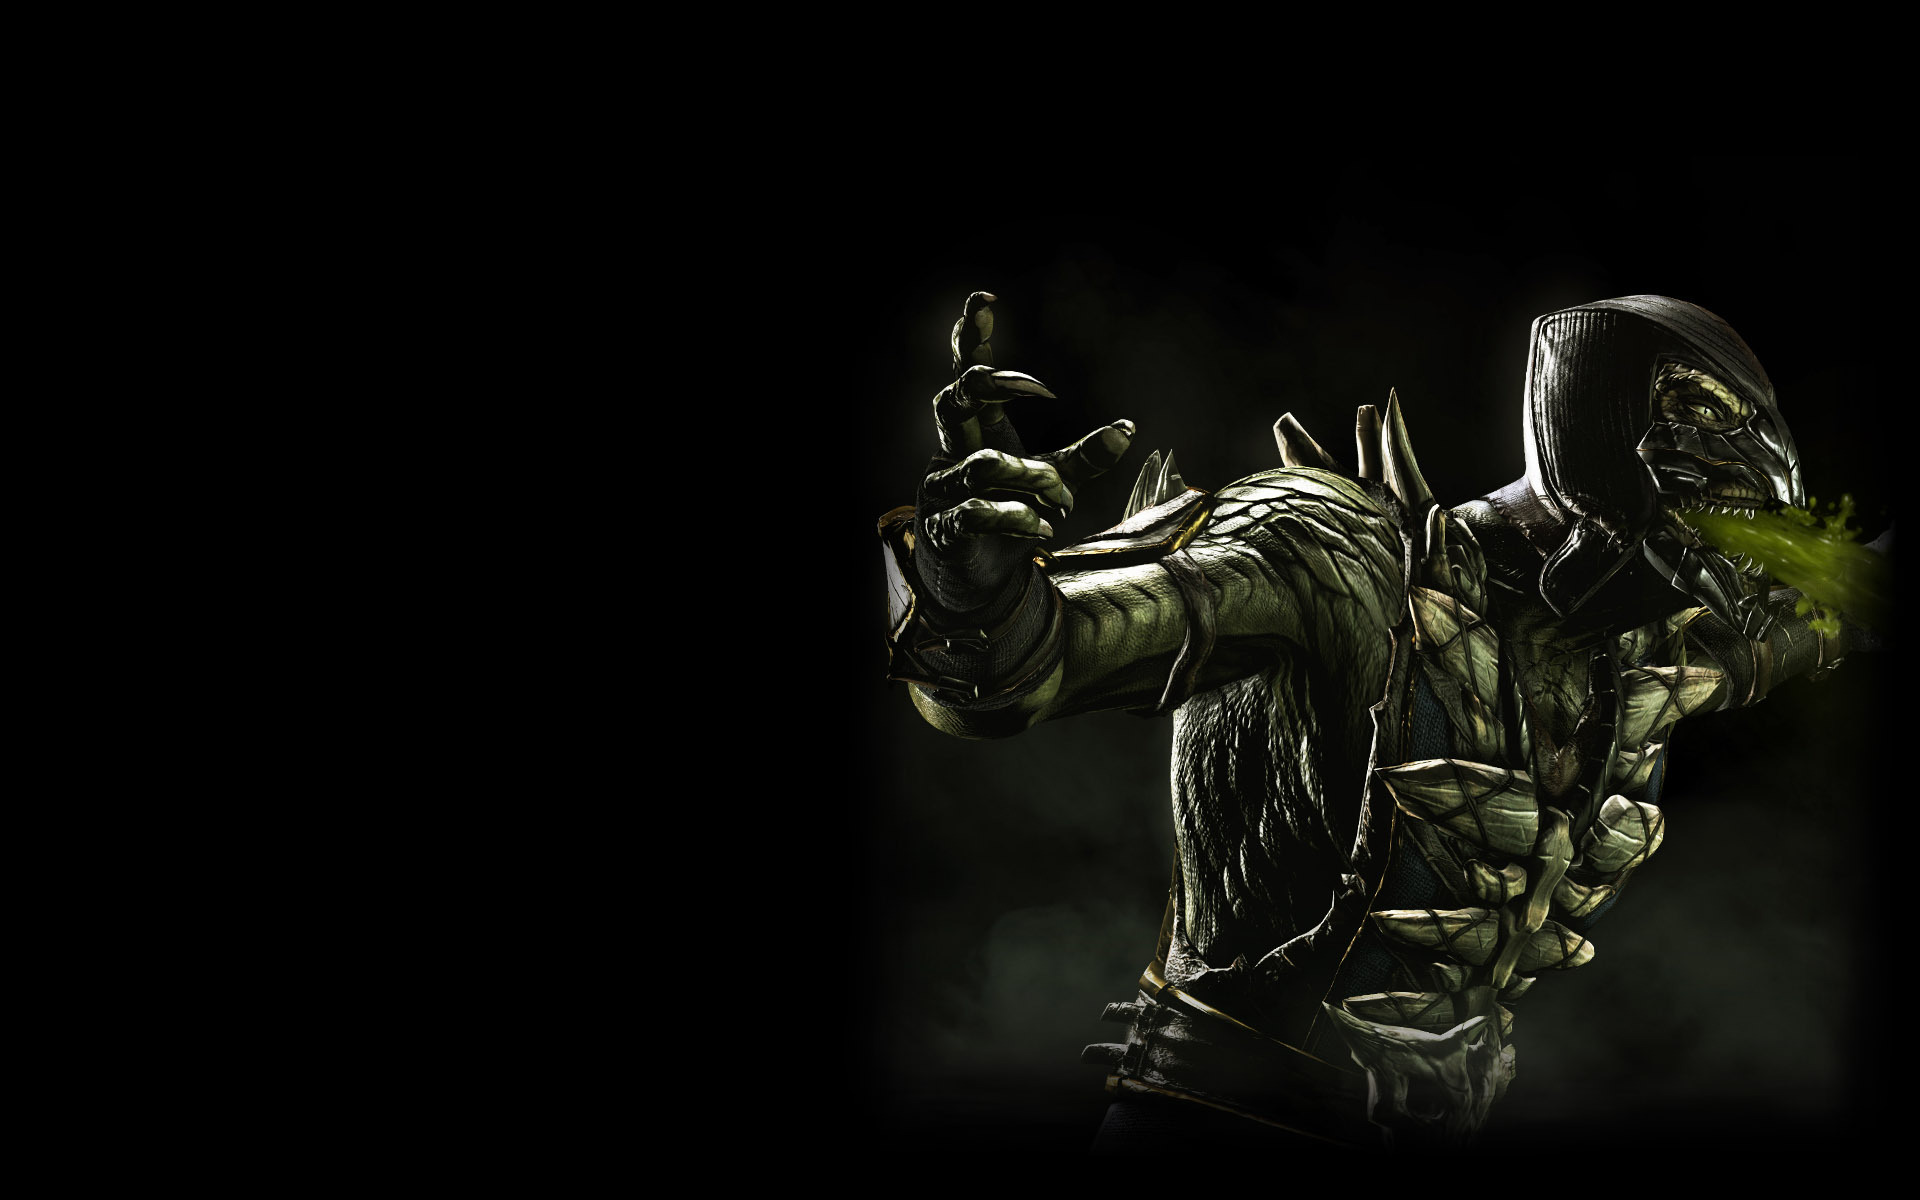 image - mortal kombat x background reptile | steam trading cards